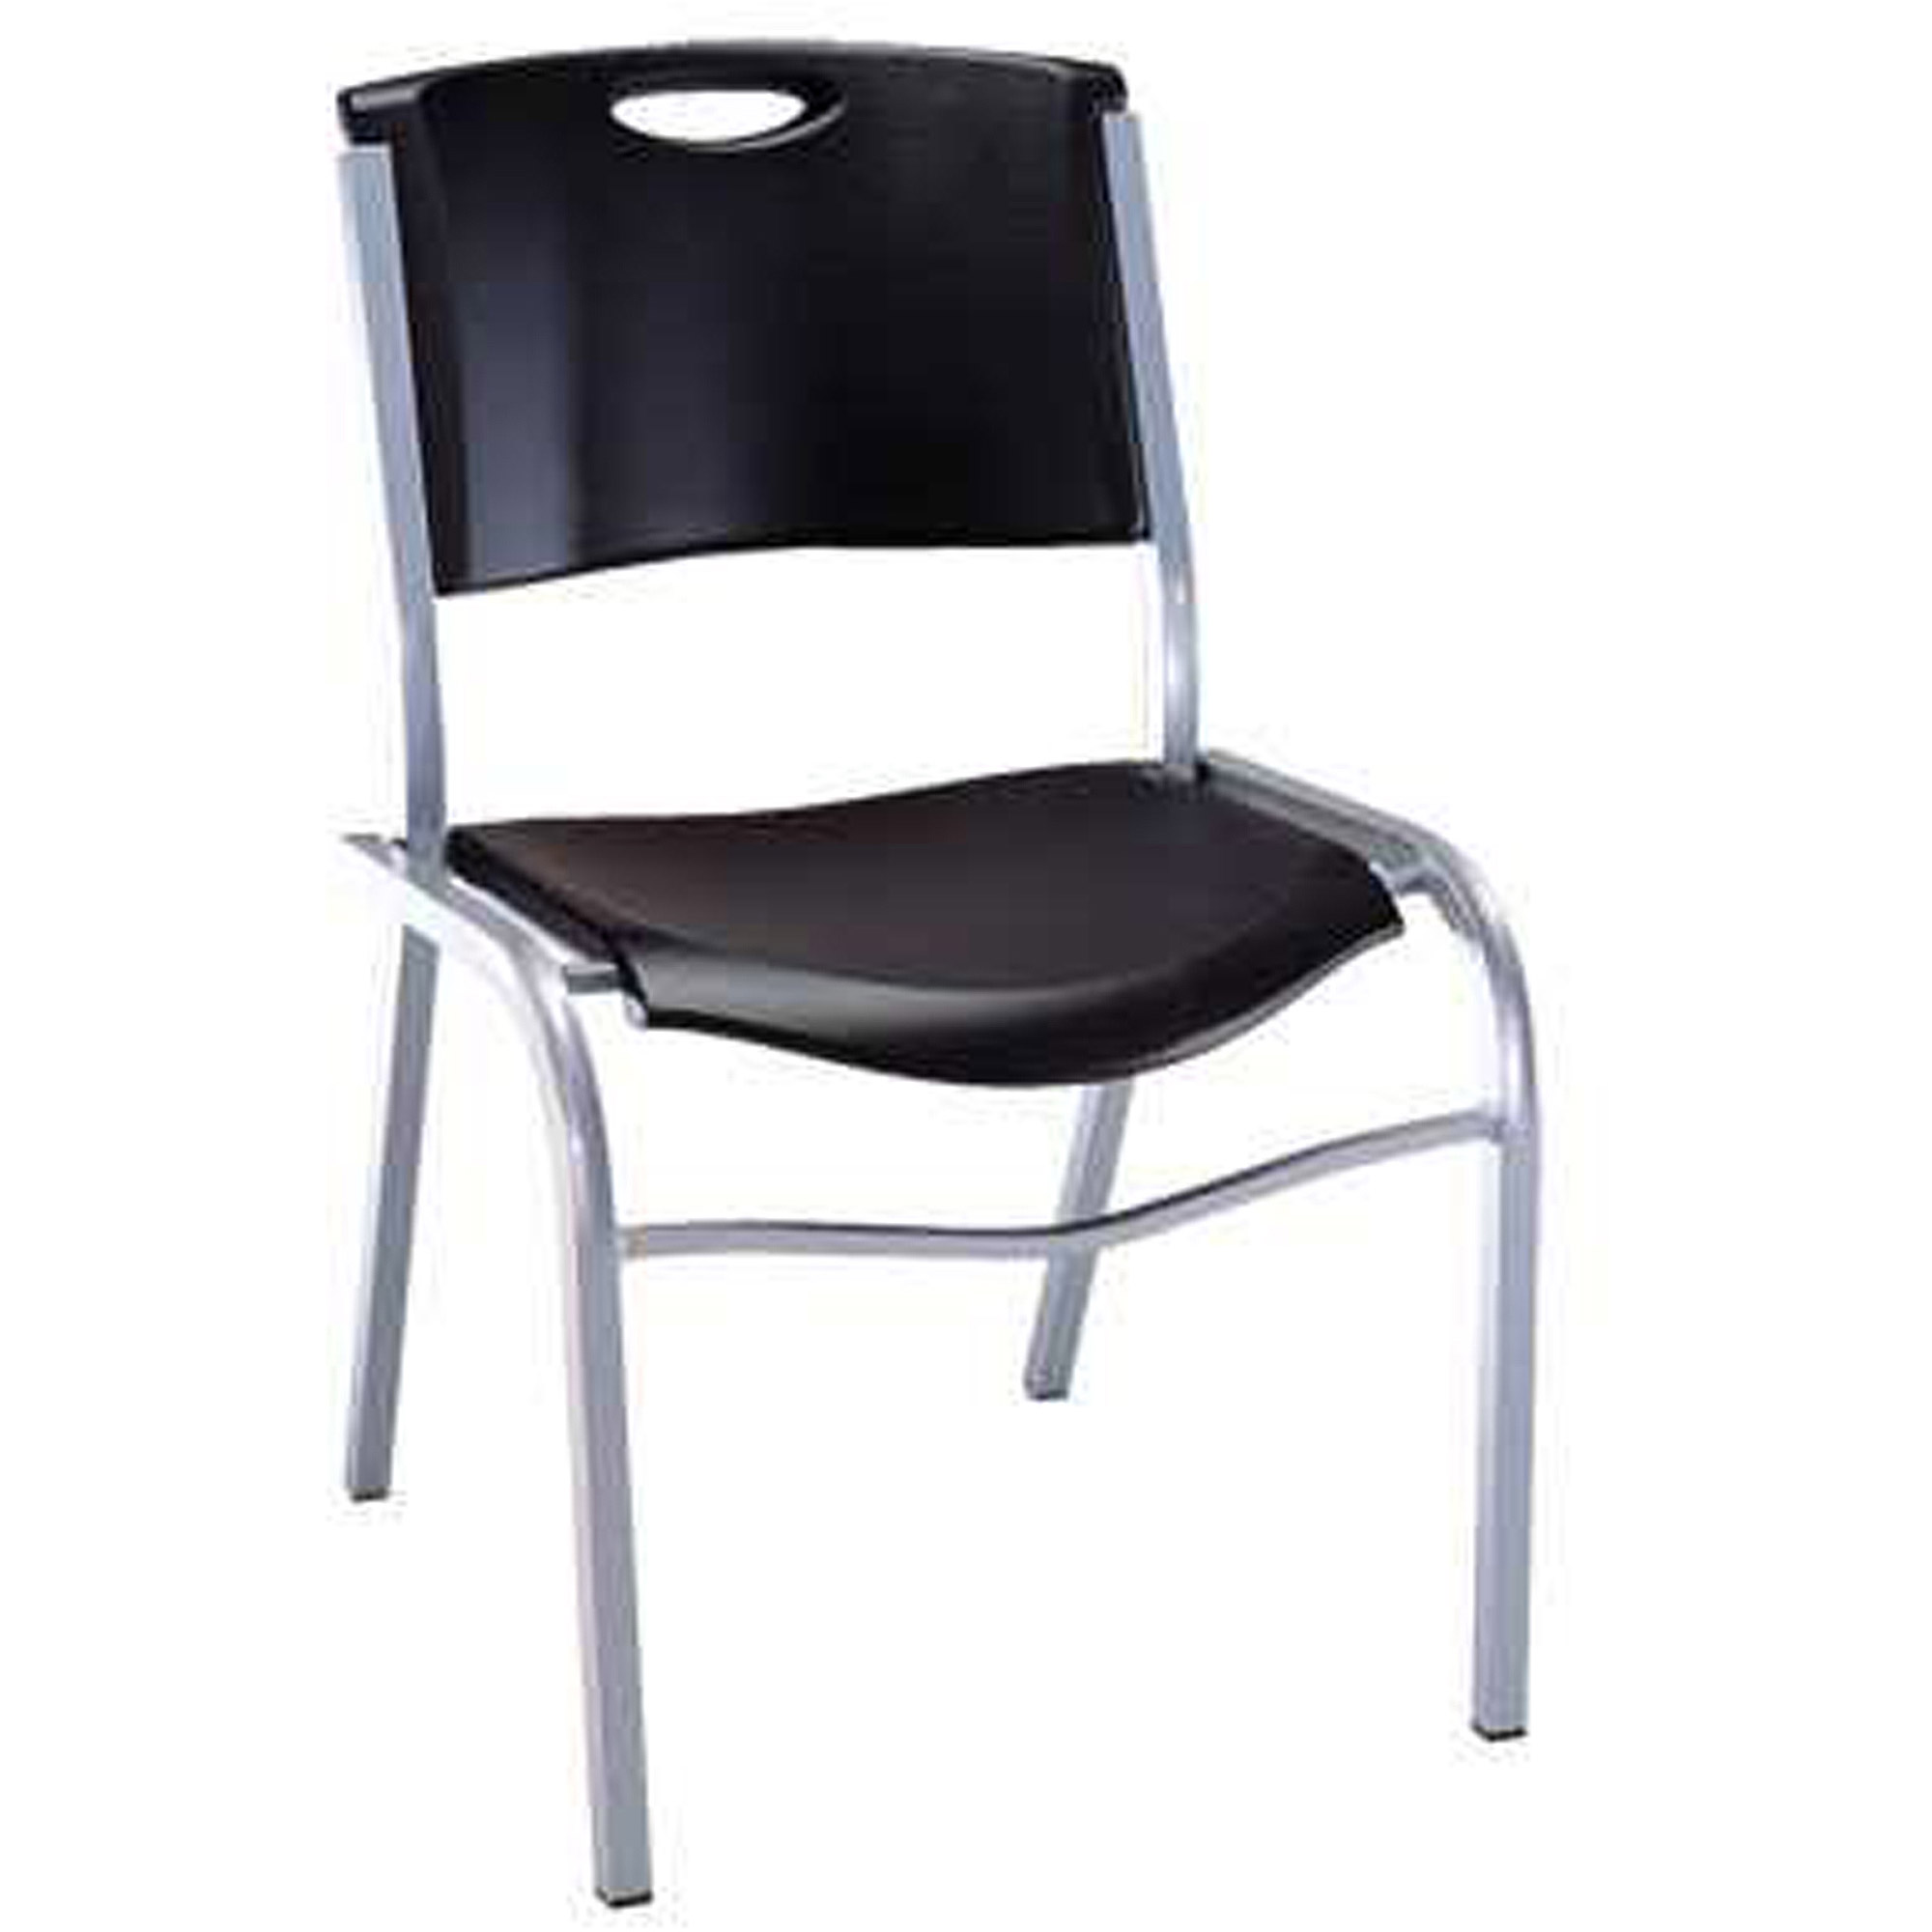 Genial Lifetime Stacking Chair, Black, Set Of 4, 42830   Walmart.com